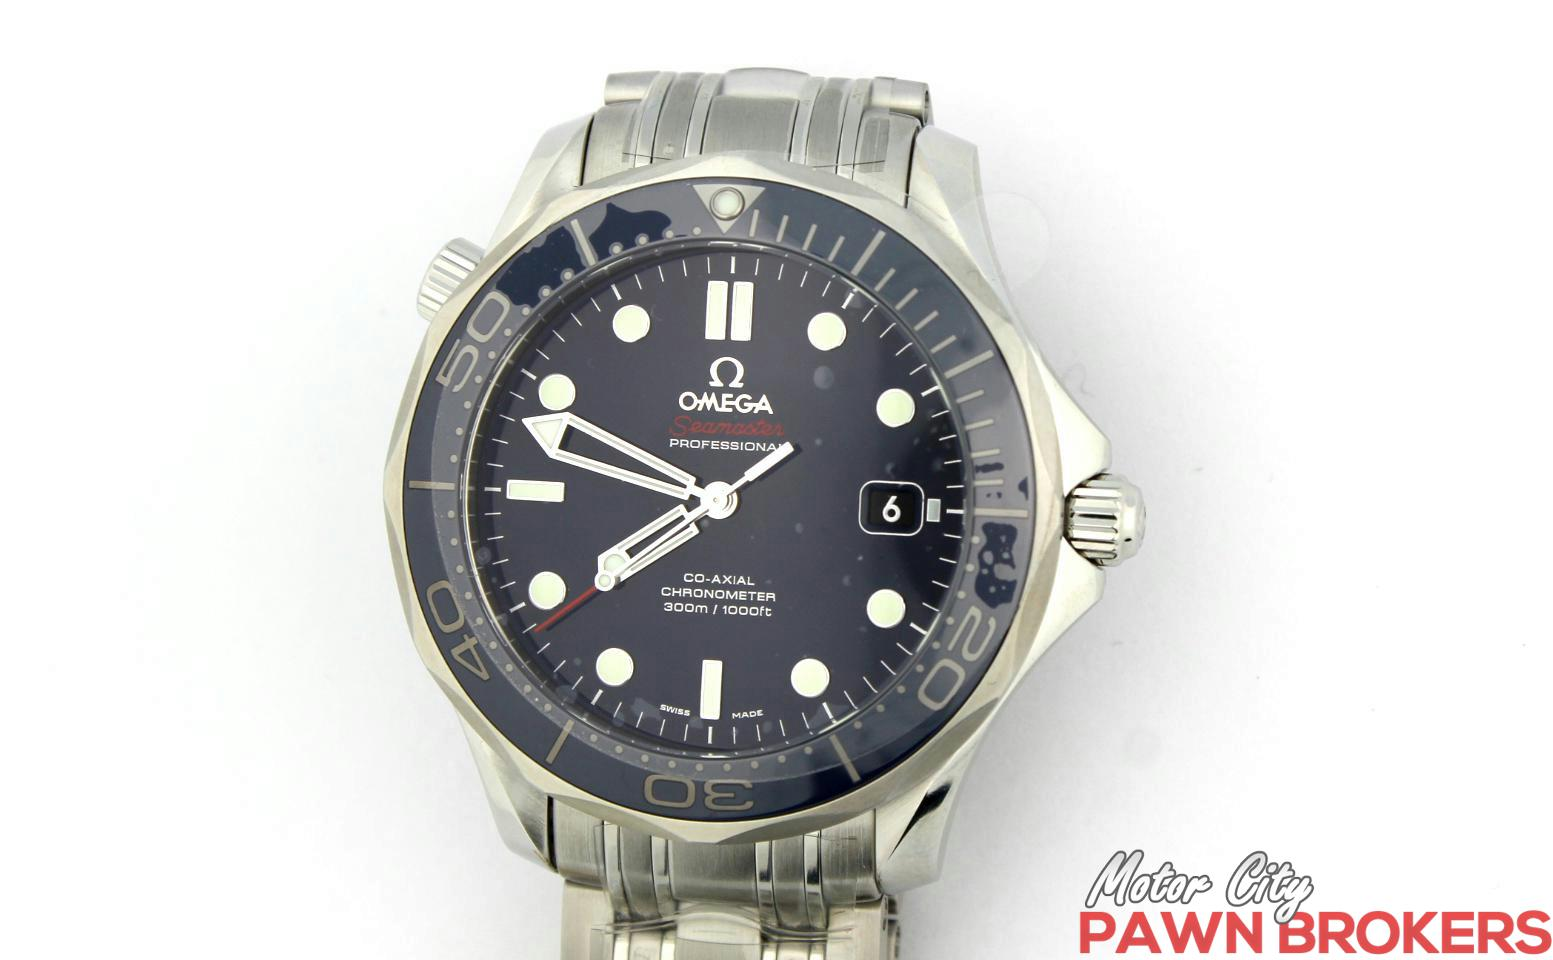 Omega seamaster professional 41 mm diver 300m blue men 39 s watch new for Omega seamaster professional